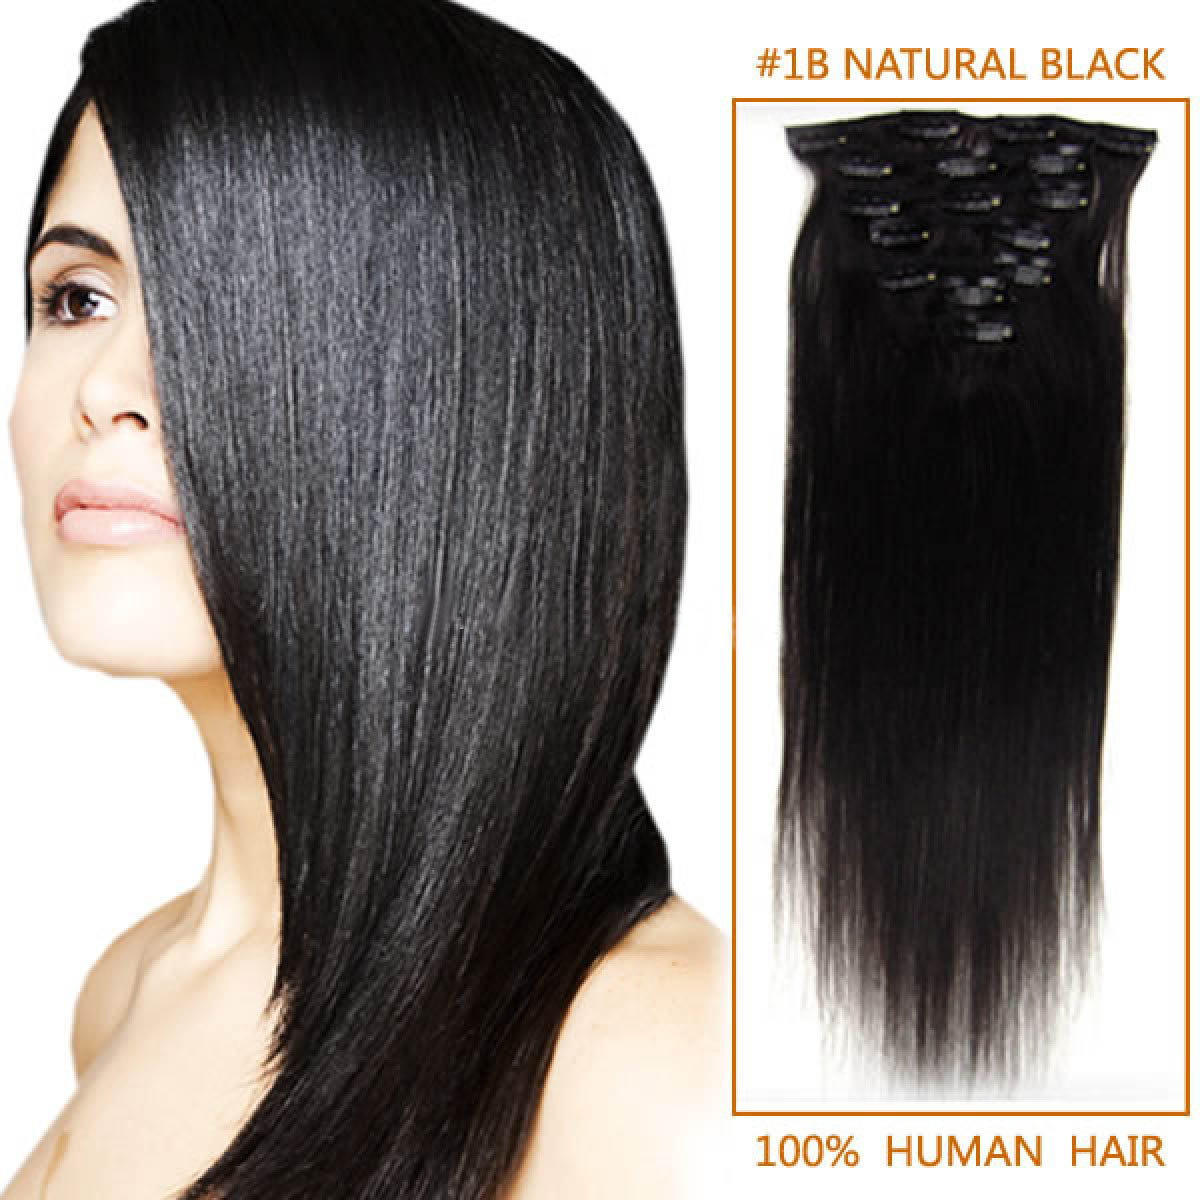 22 Inch 1b Natural Black Clip In Human Hair Extensions 11pcs